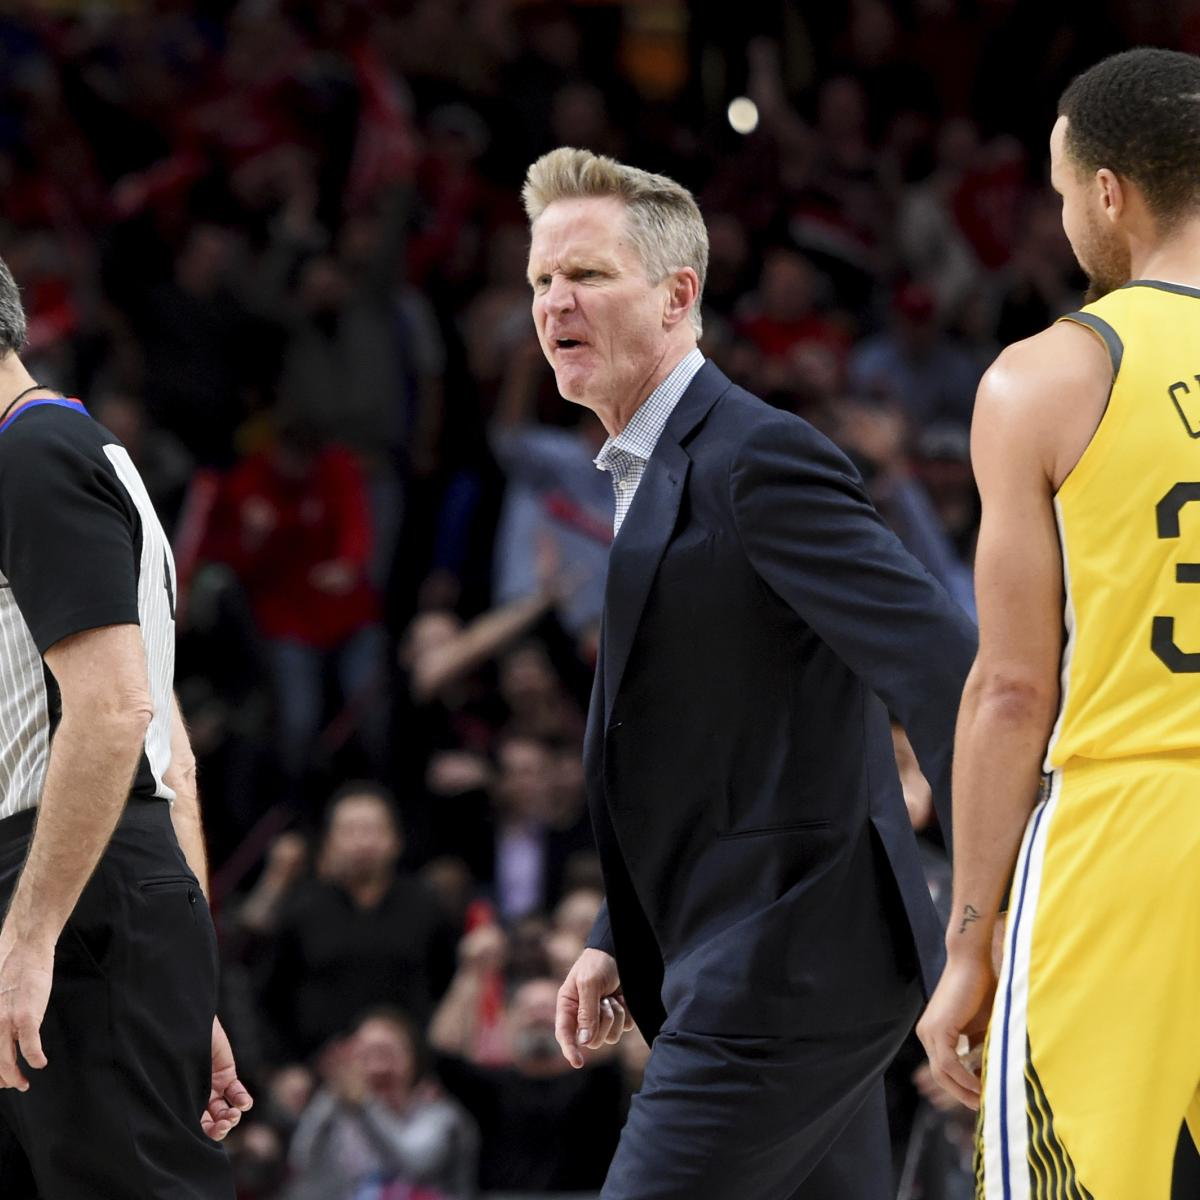 Portland Trail Blazers Coach: Report: Warriors' Steve Kerr Fined $25K For Screaming At